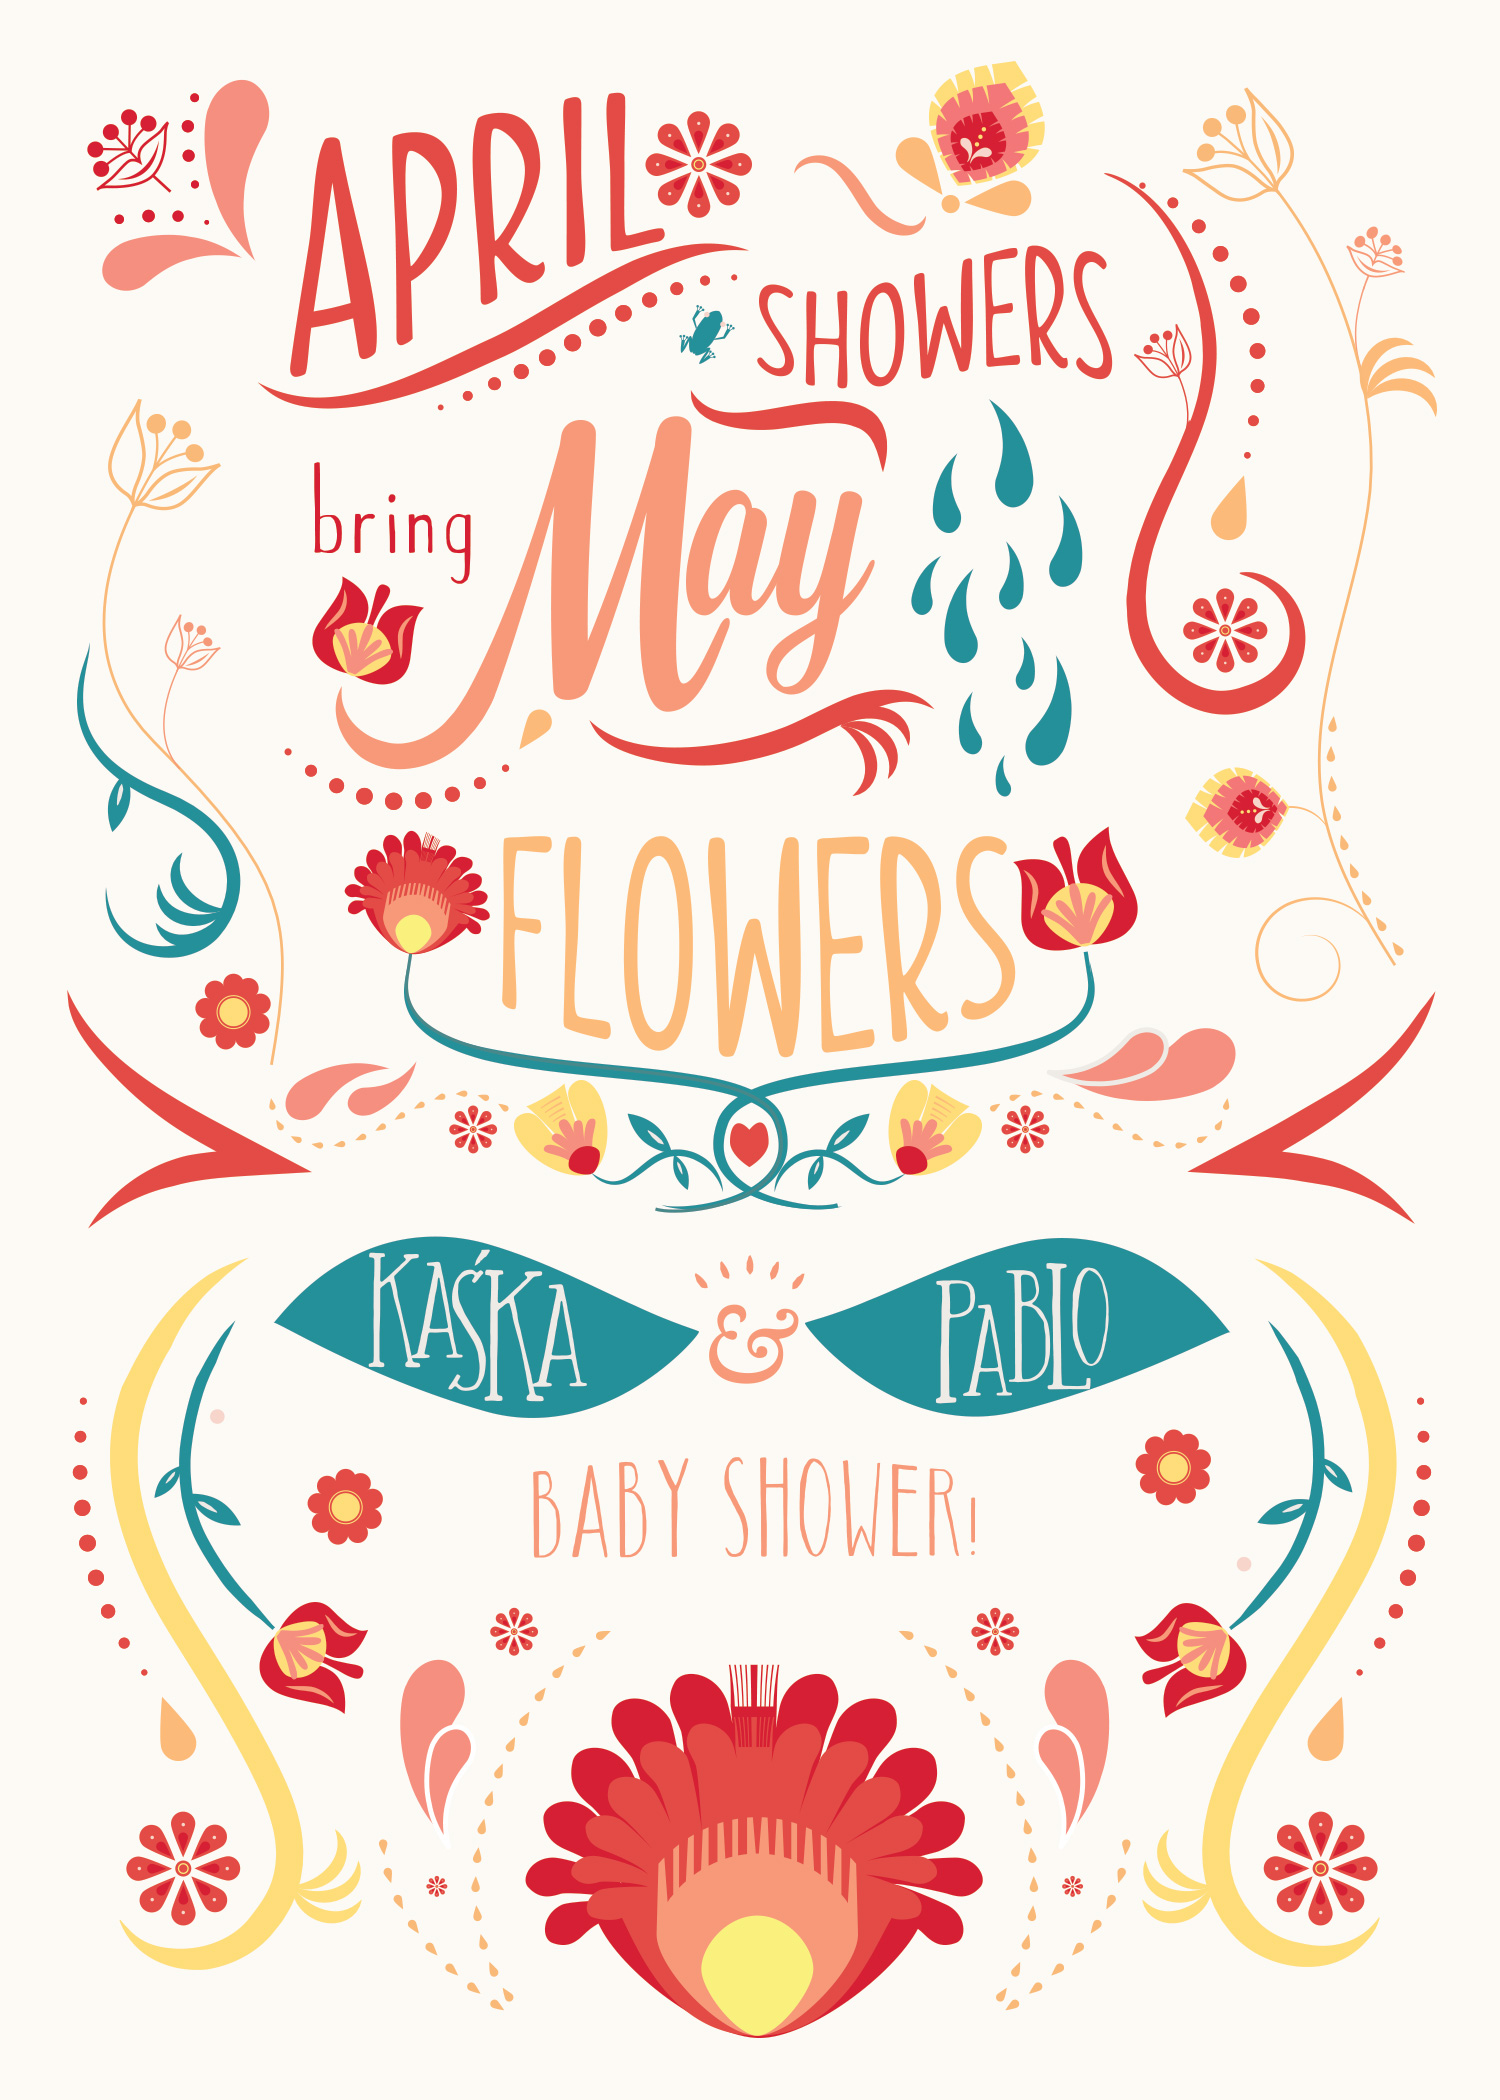 title april showers bring may flowers date april 1 2015